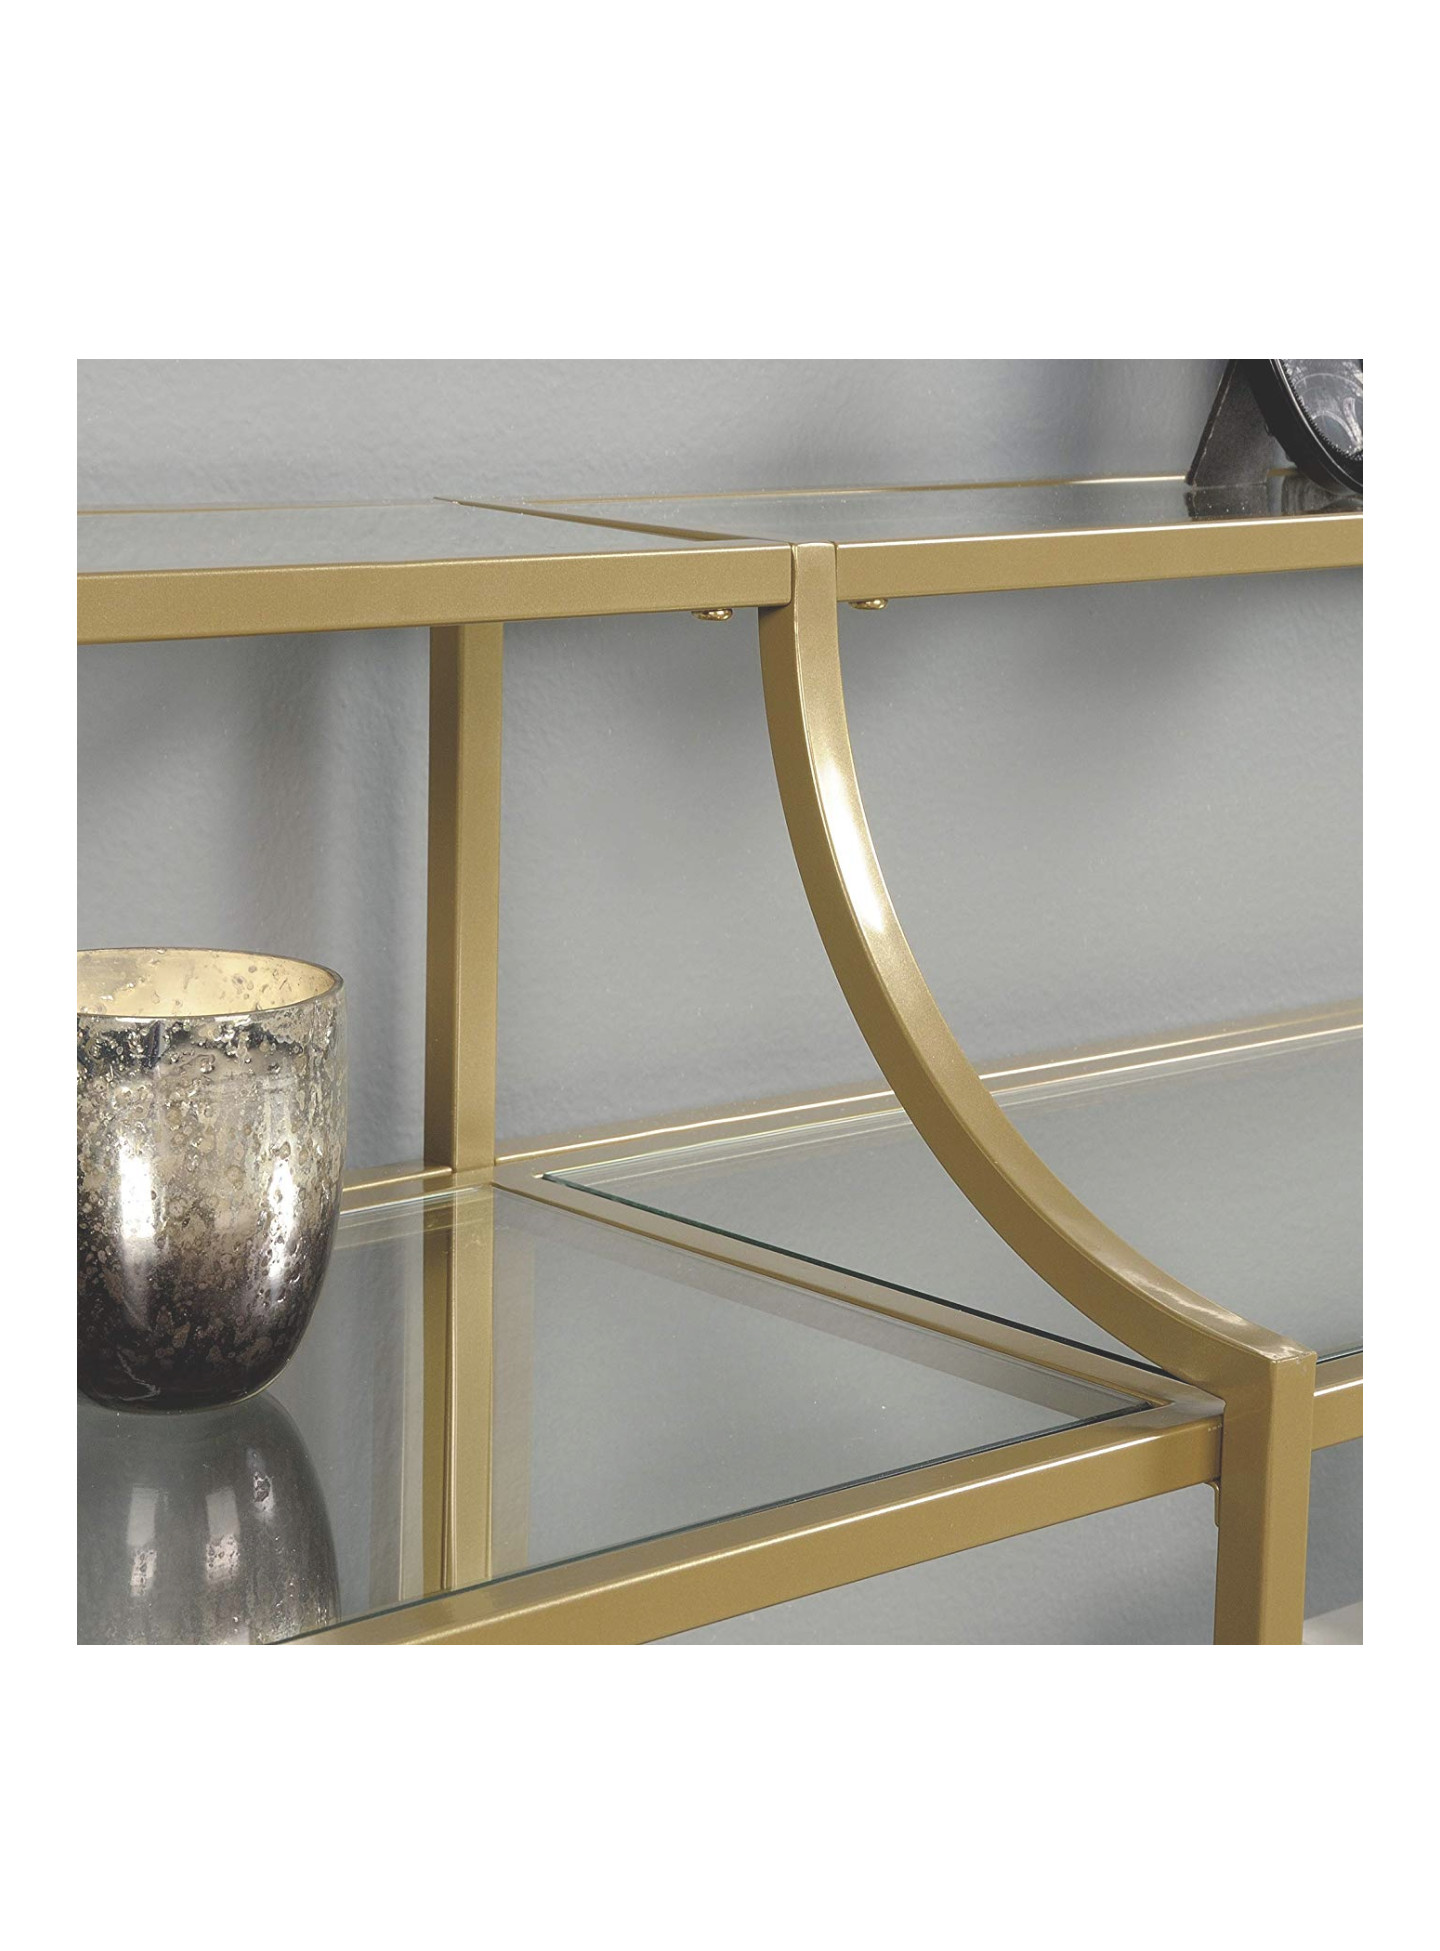 Sauder Console Table w/ Glass Shelves in Matte Gold Finish